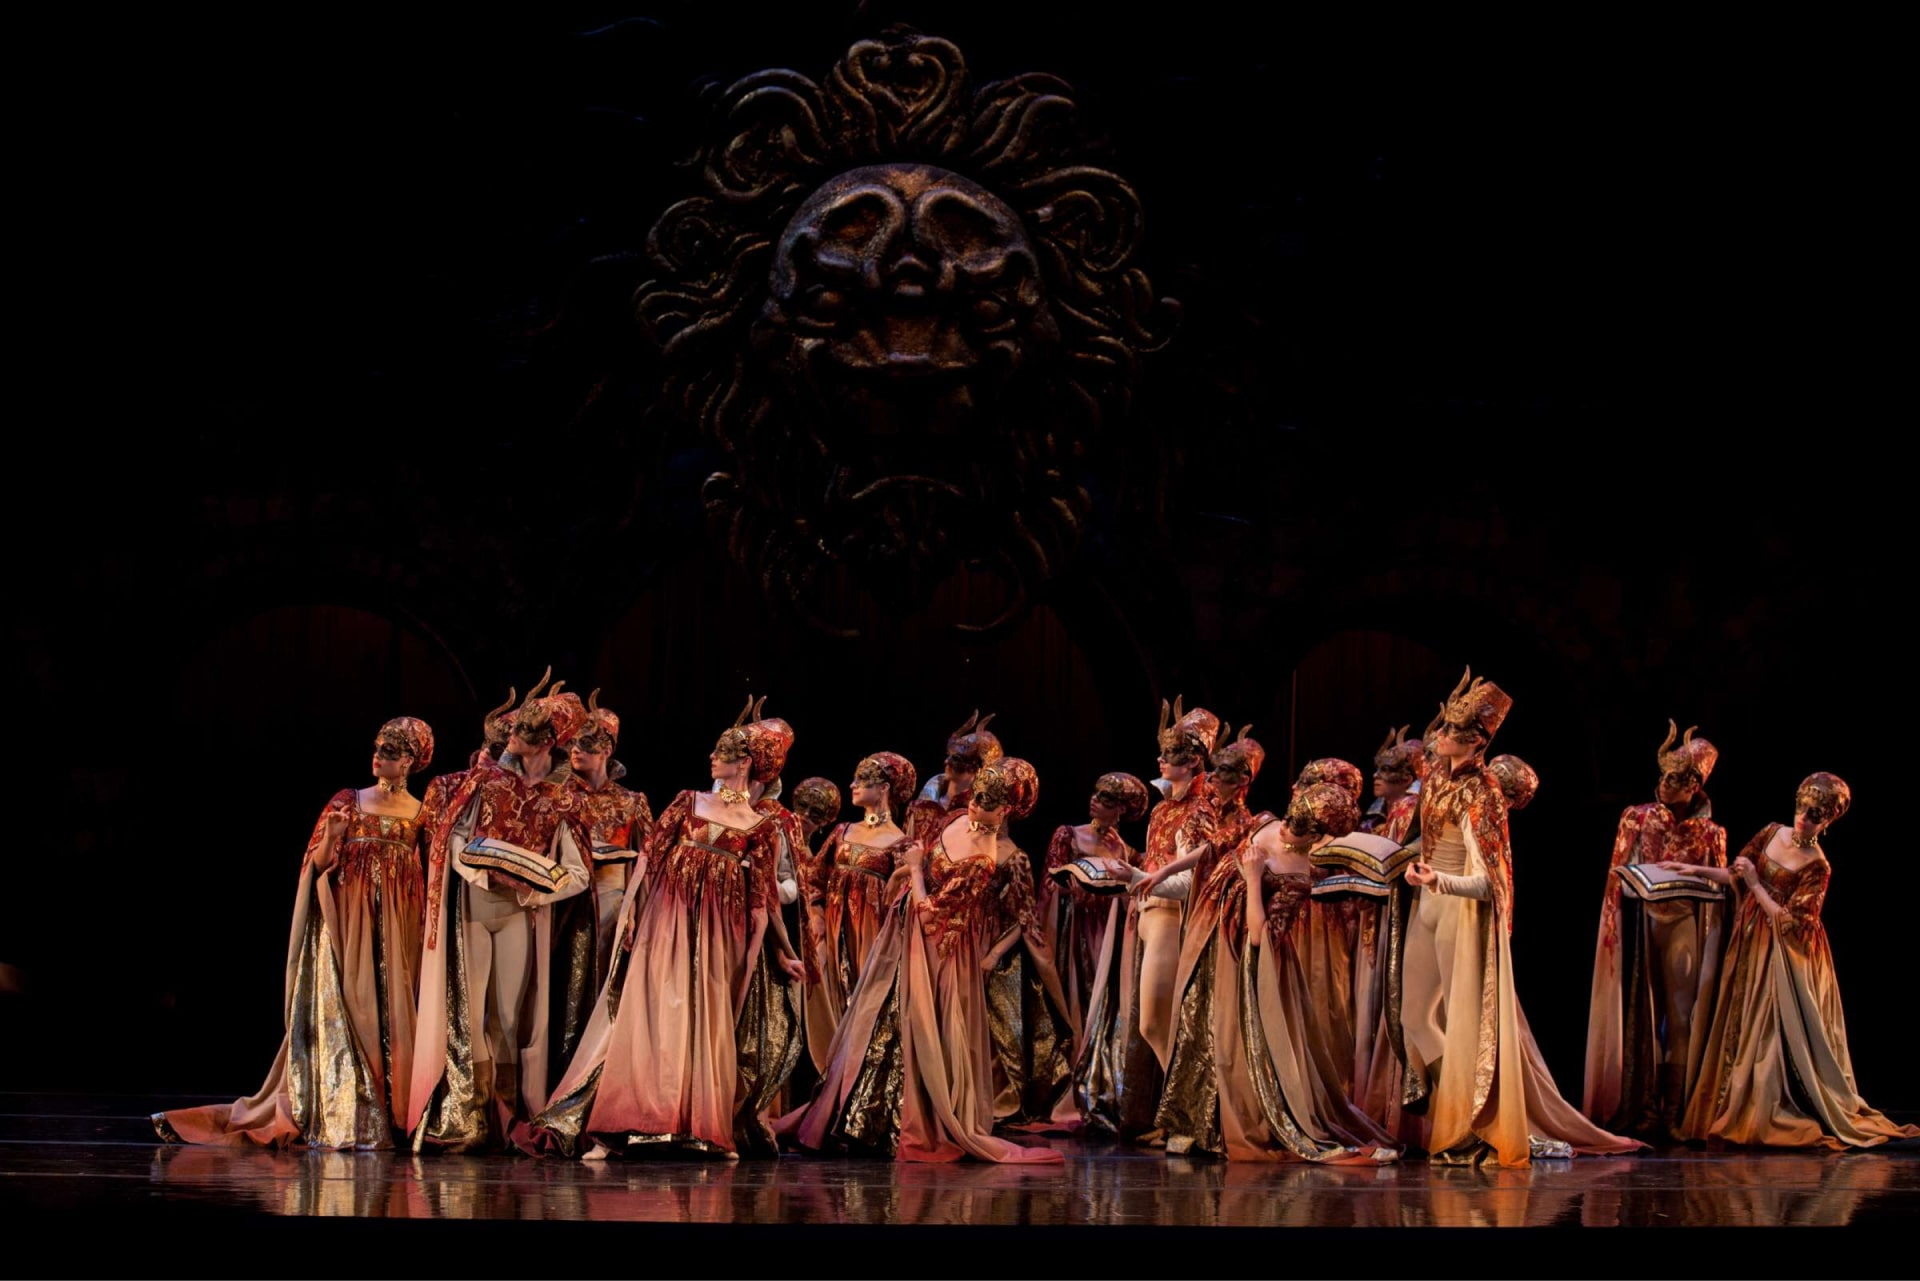 Chorus of dancers in dip-died gowns and masks look left against dark background under giant, lion's head wall ornament.